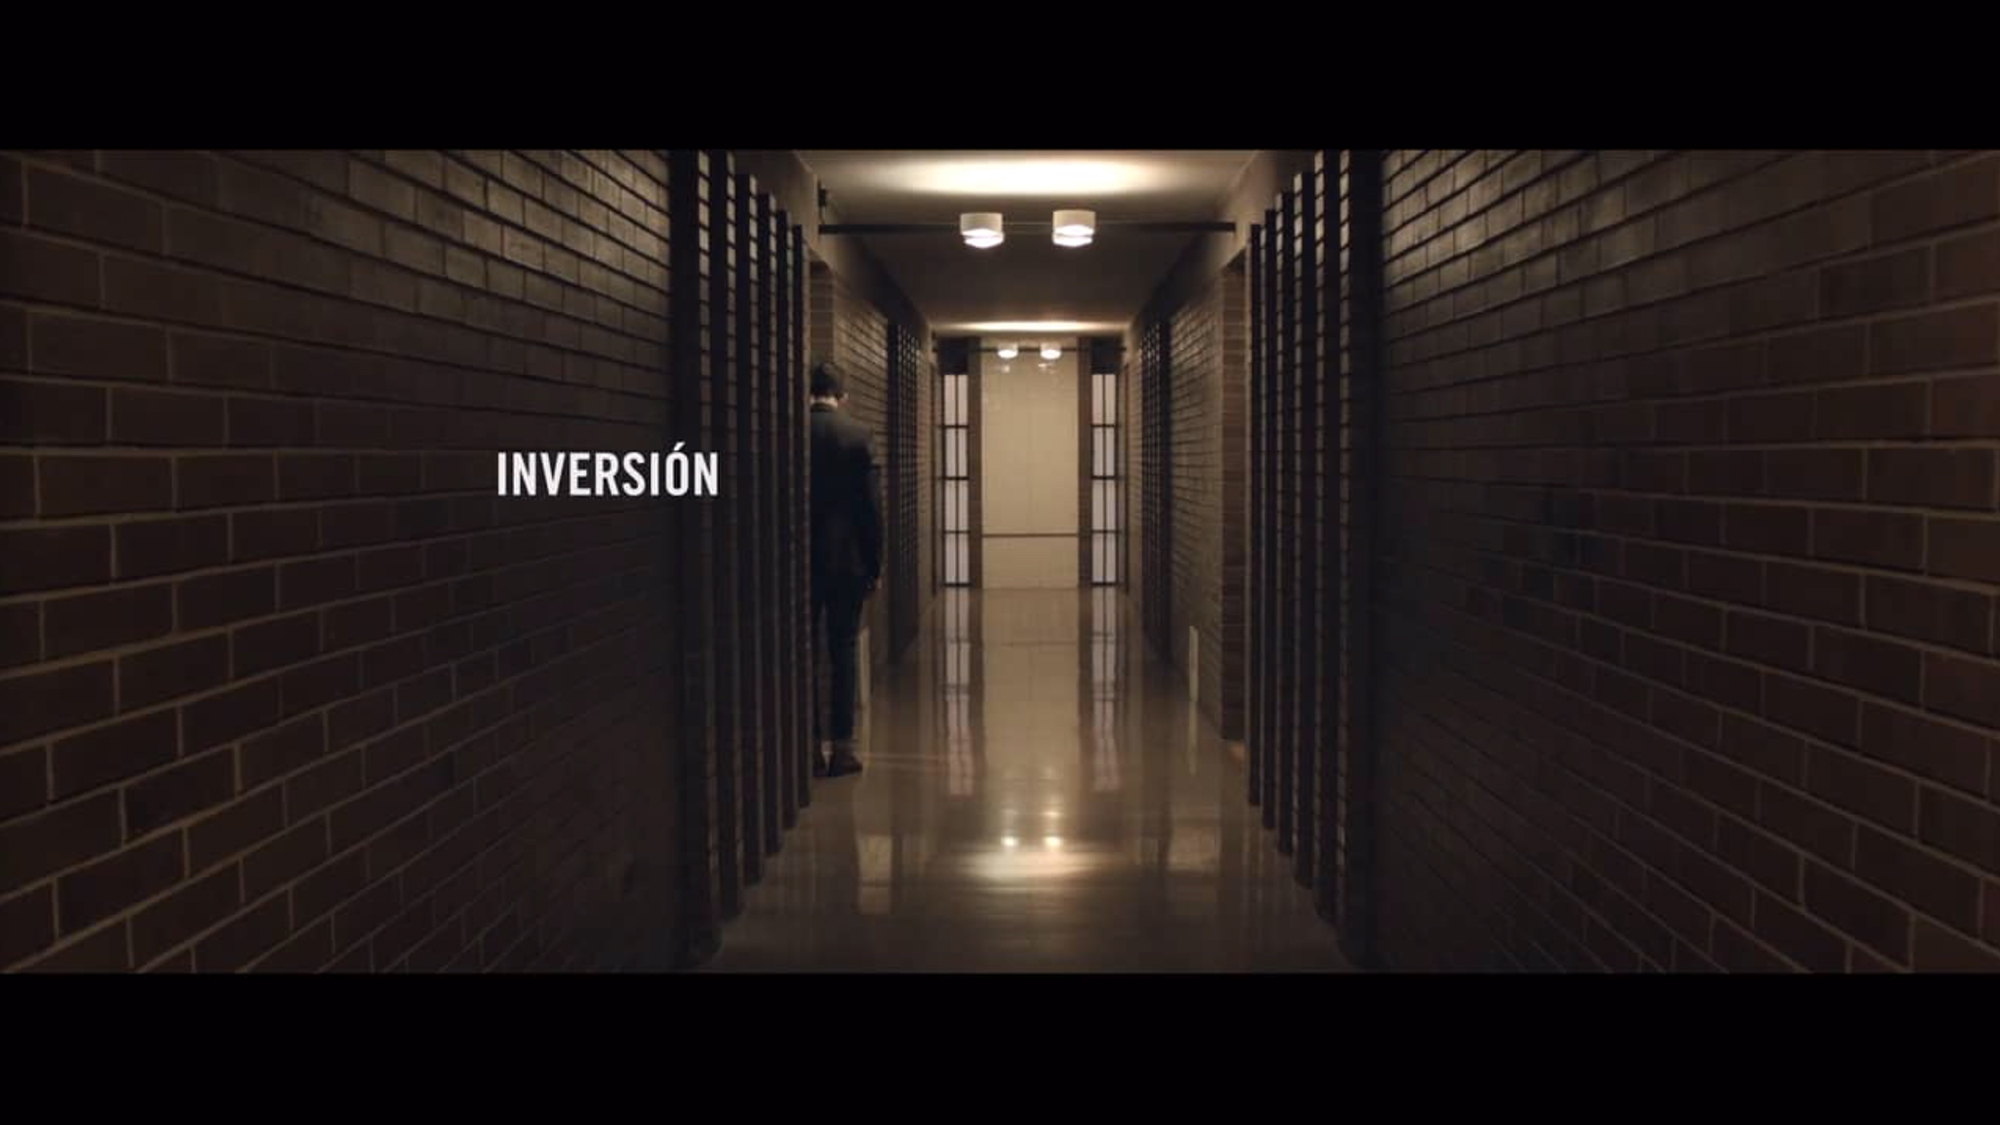 Whatmovie 1: 'Investment' by Marcel Juan